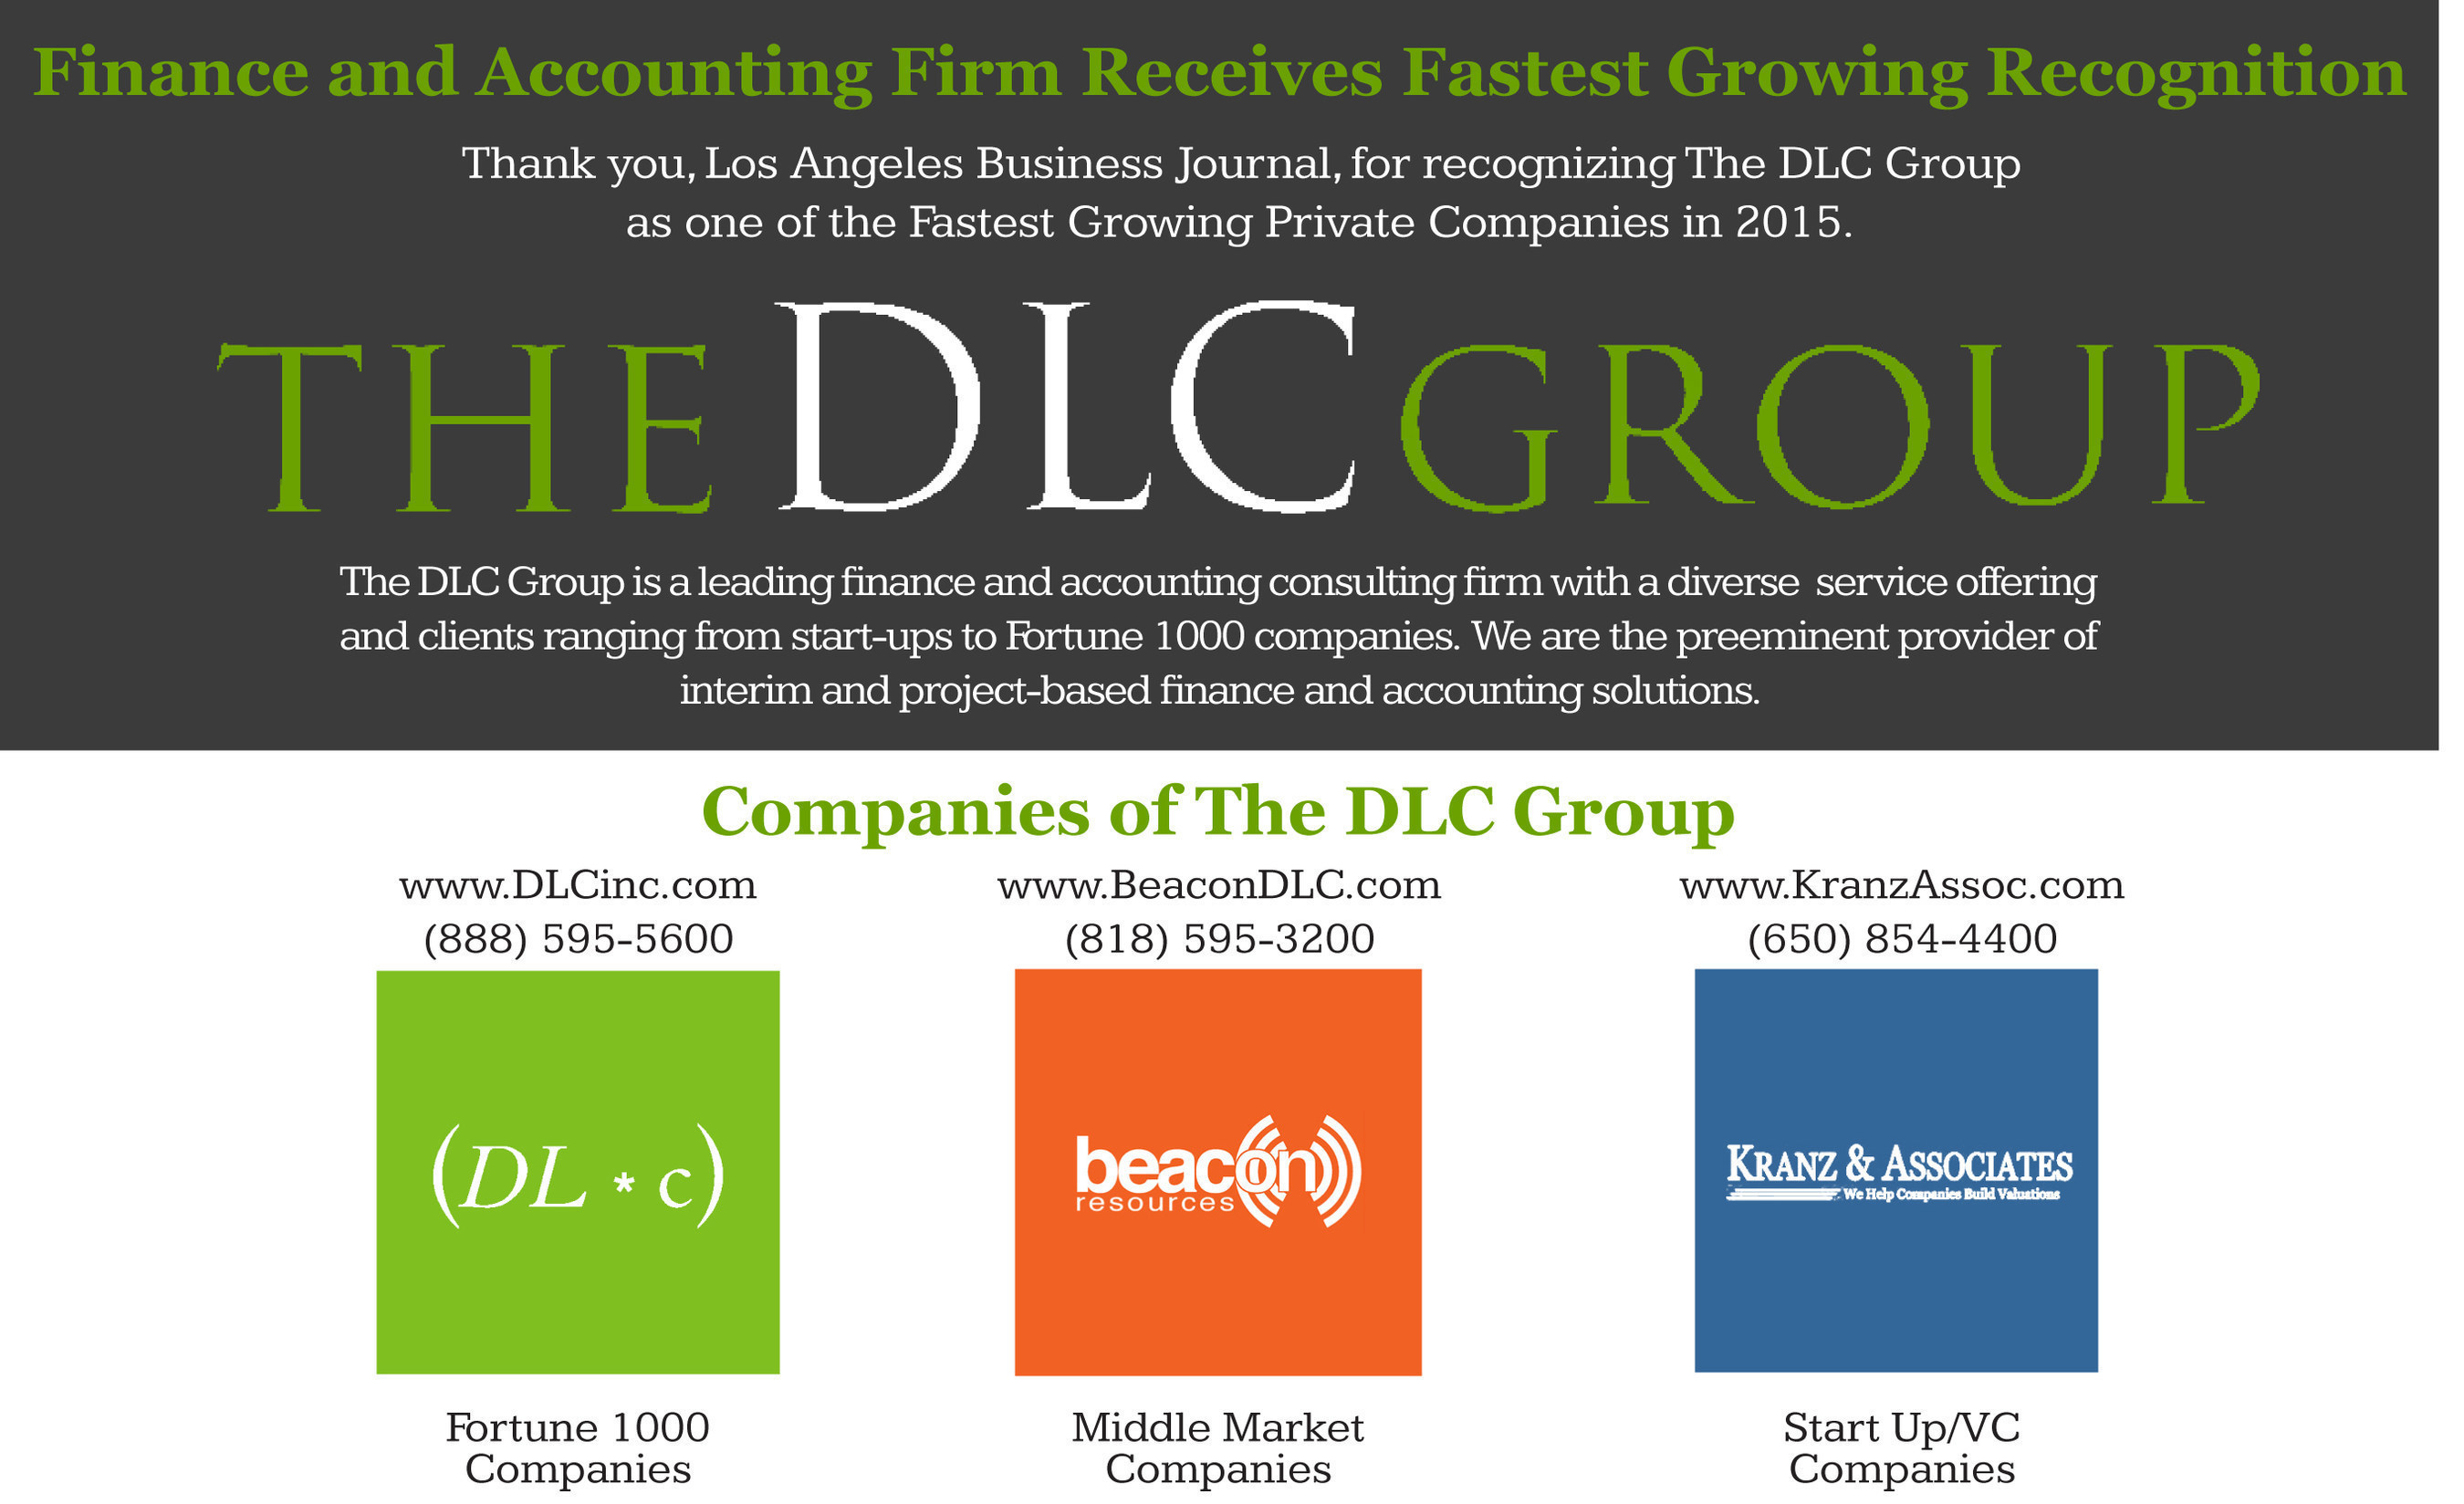 DLC Group - A Fastest Growing Company in Los Angeles!